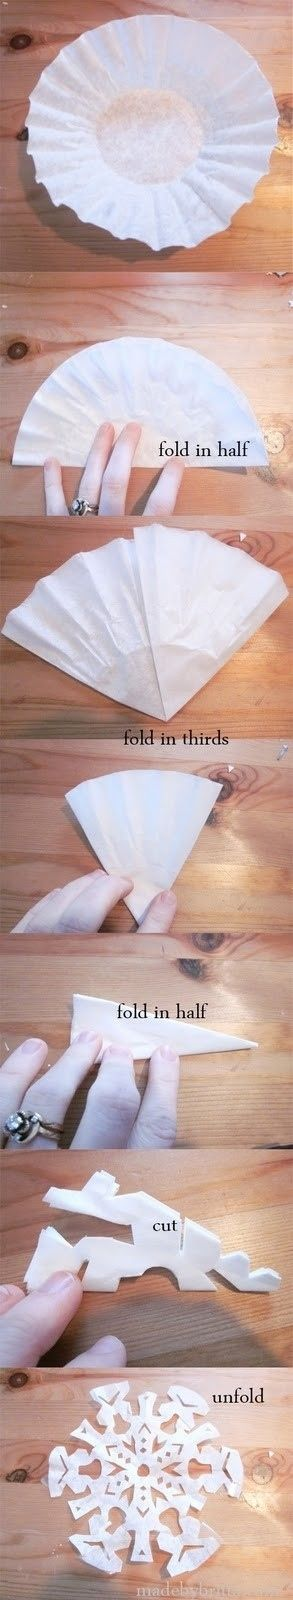 If you need quick decorations, turn a coffee filter into a snowflake! | Party Hacks For The Holidays